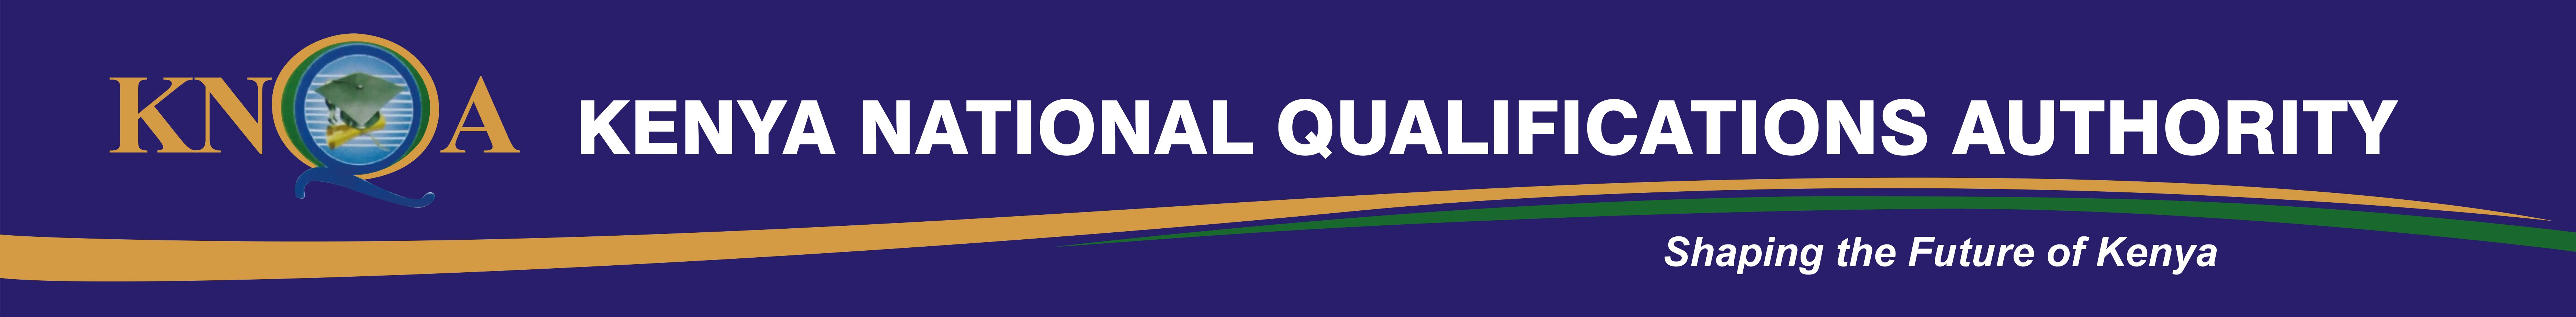 Kenya National Qualifications Authority Logo